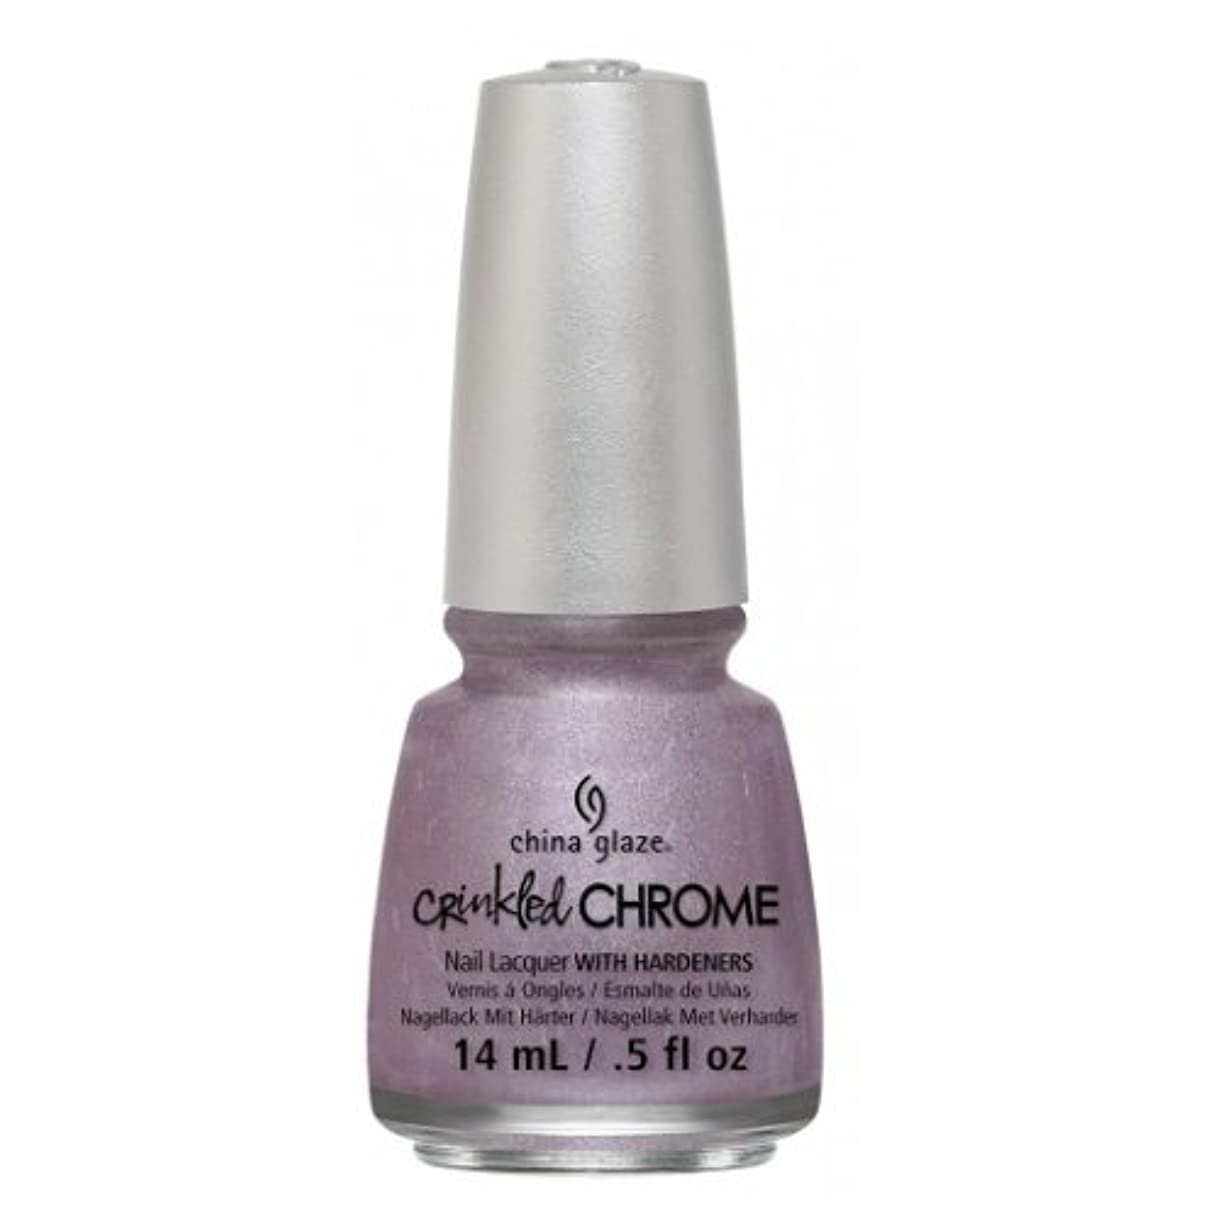 疑問に思う公爵貢献CHINA GLAZE Nail Lacquer - Crinkled Chrome - Crush, Crush, Baby (並行輸入品)